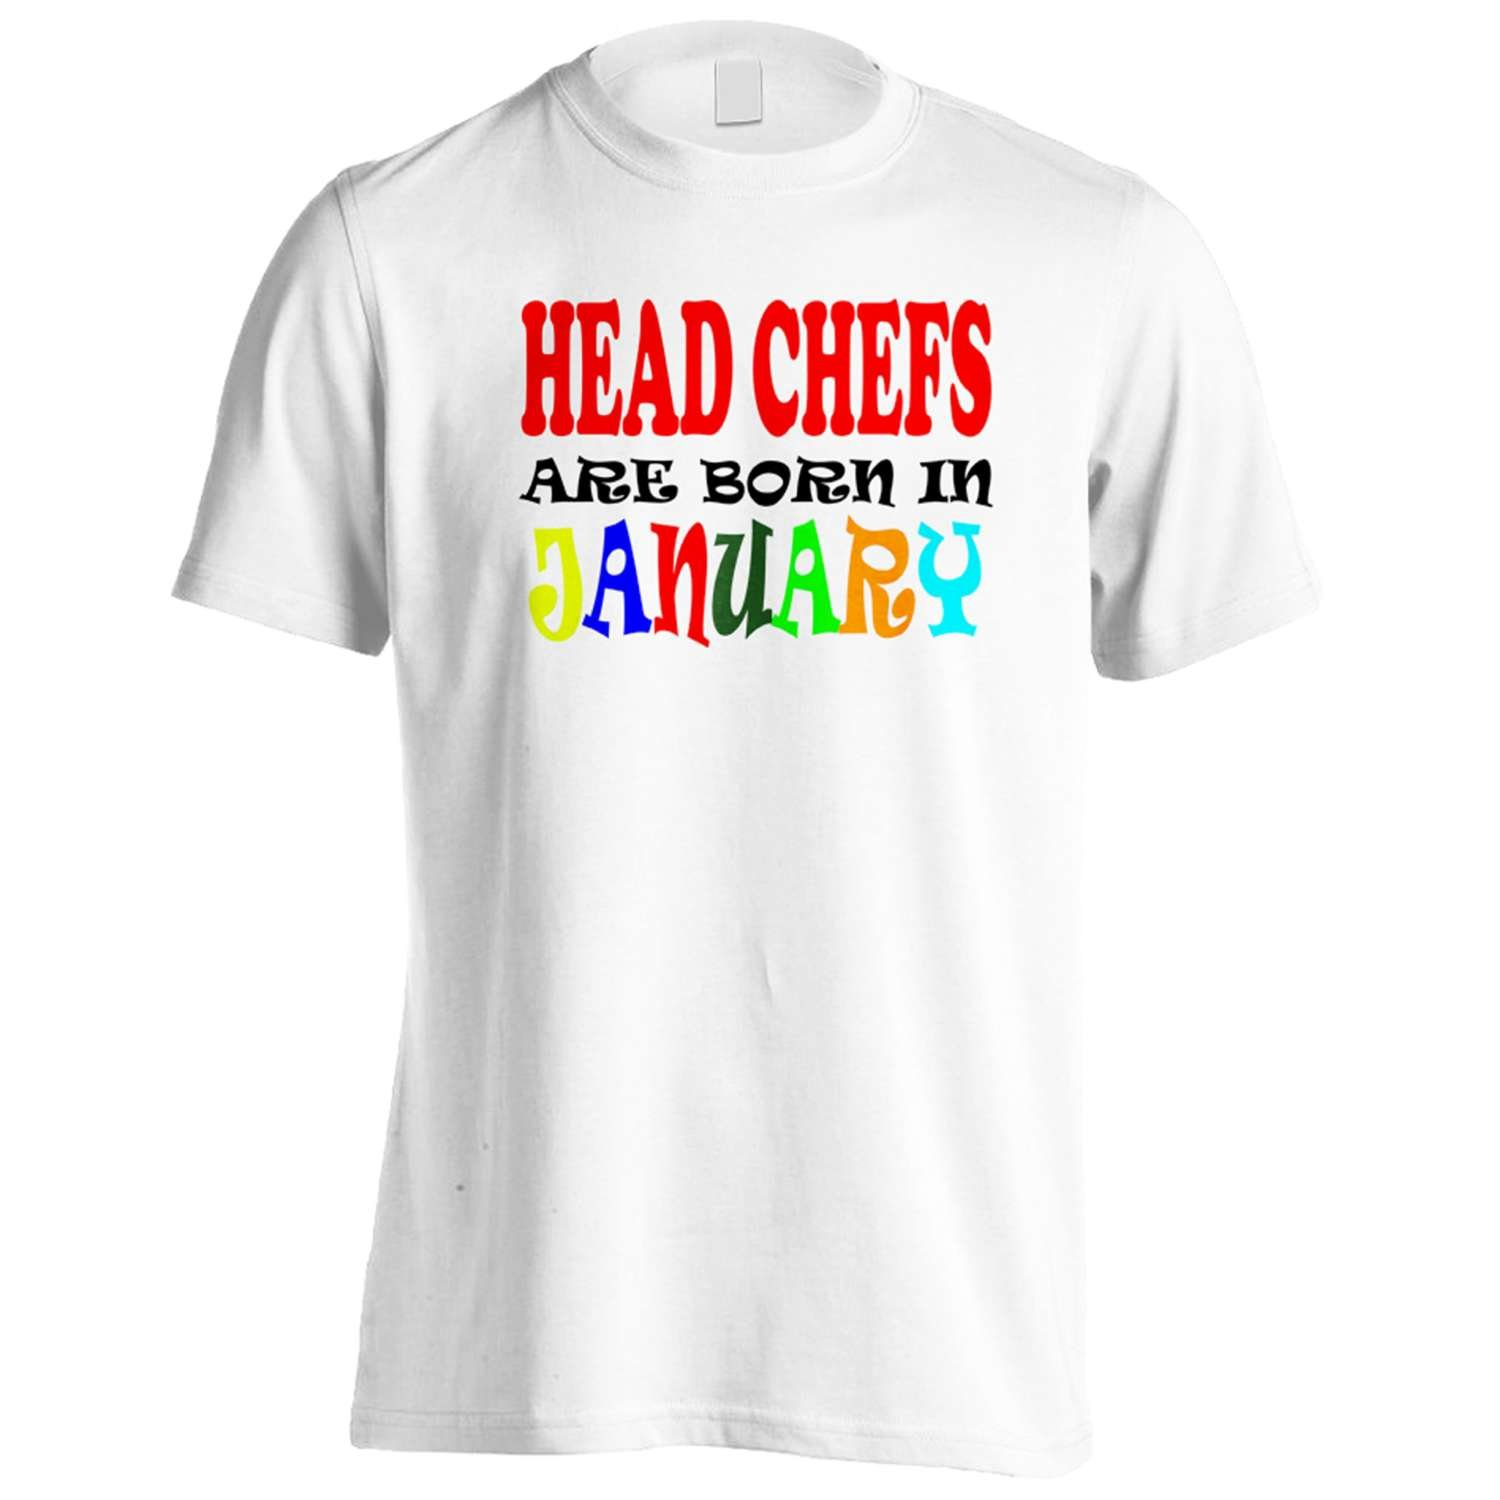 HEAD CHEFS ARE BORN IN JANUARY FUNNY Men's T-Shirt Tee x10m